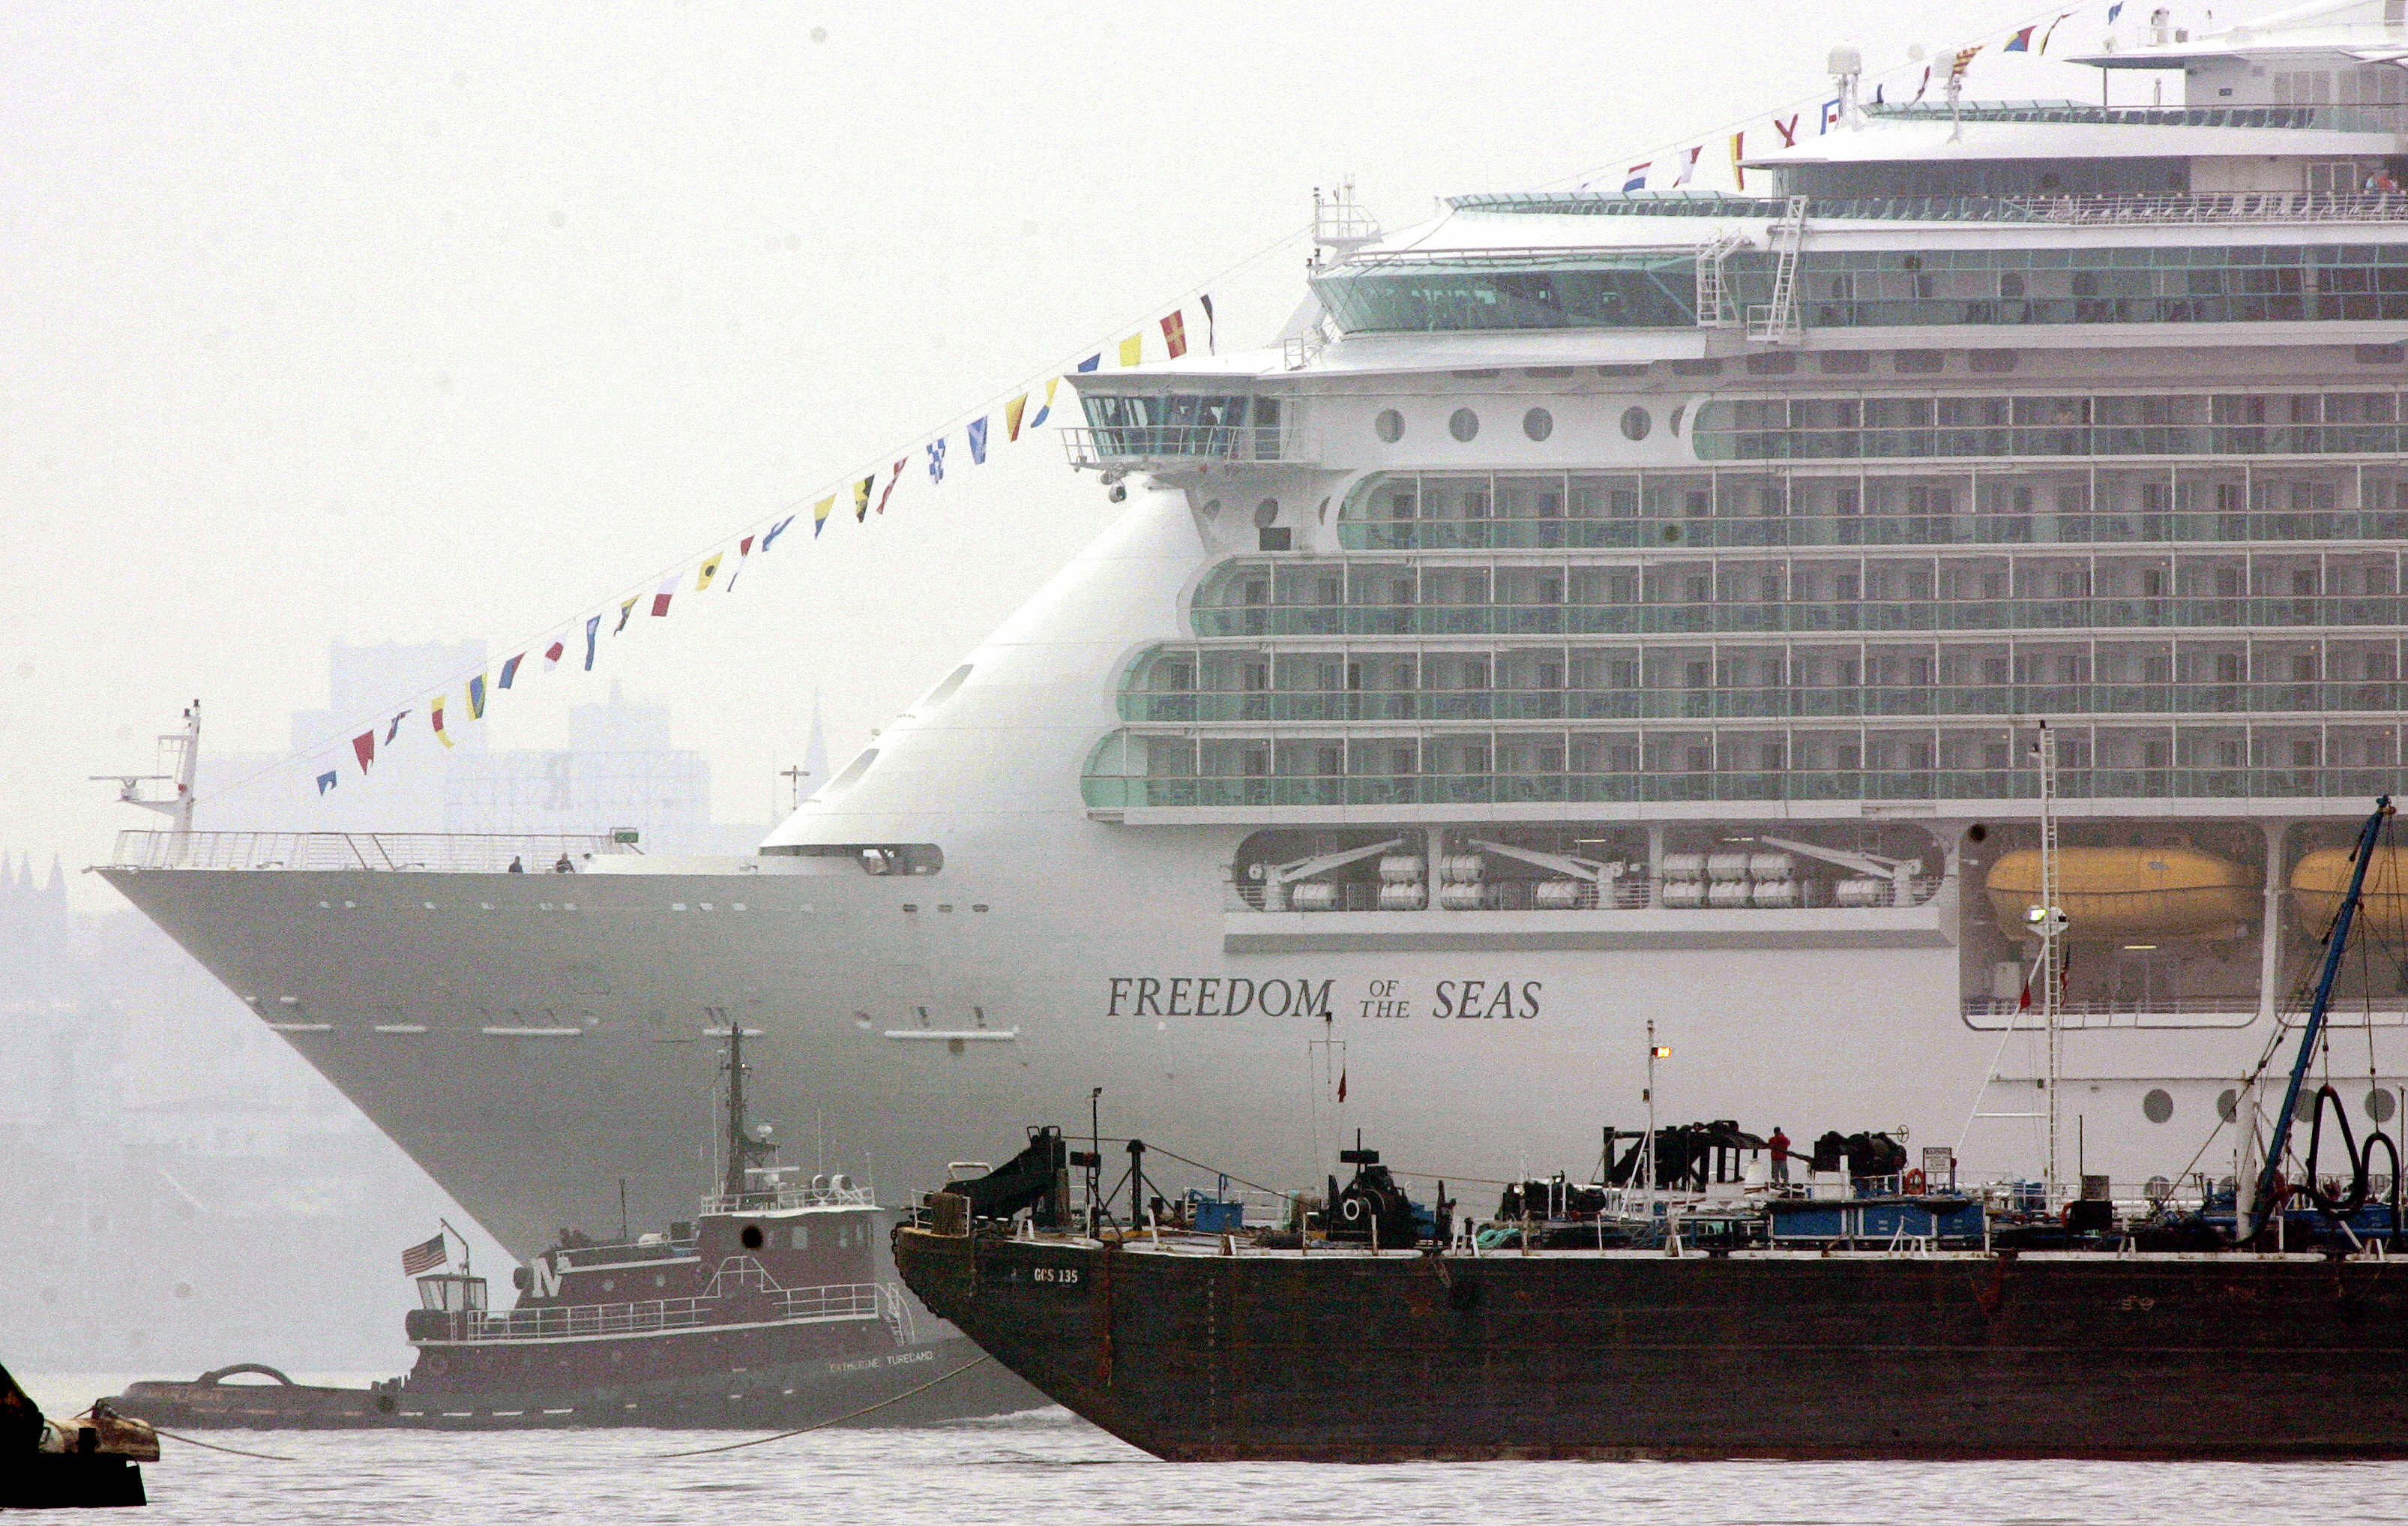 Bayonne, UNITED STATES:  The new cruise ship Freedom of the Seas, the world's largest cruise ship, owned by Royal Caribbean, gets caught in some barge traffic off the shores of Bayonne, New Jersey 12 May, 2006 in New York Harbor.   AFP PHOTO/DON EMMERT  (Photo credit should read DON EMMERT/AFP/Getty Images)